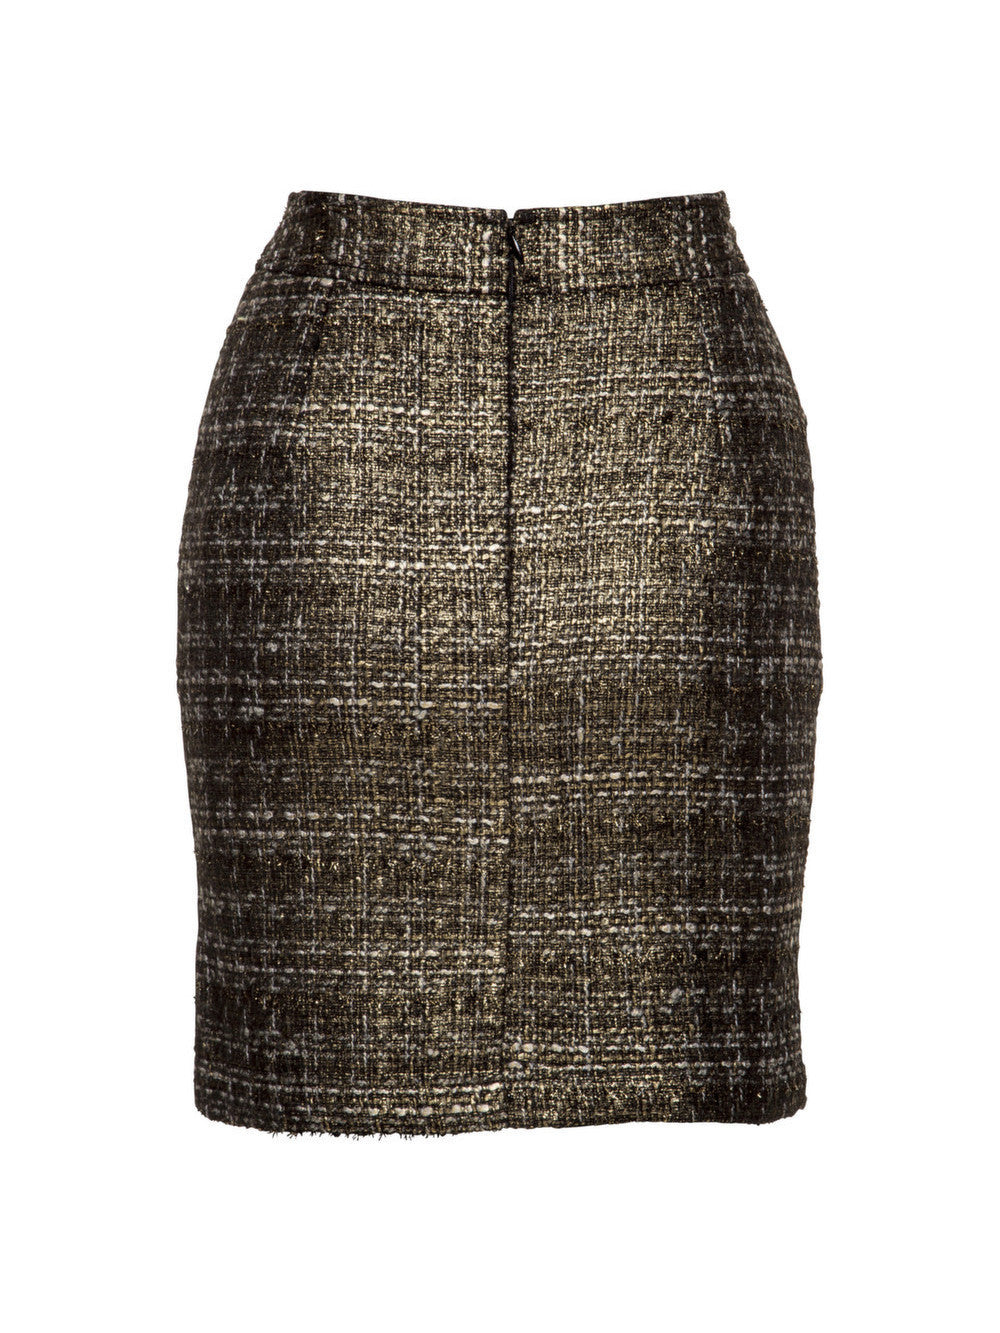 We Have Lingered Boucle Skirt - Little Joe Woman by Gail Elliott E-Boutique  - 2